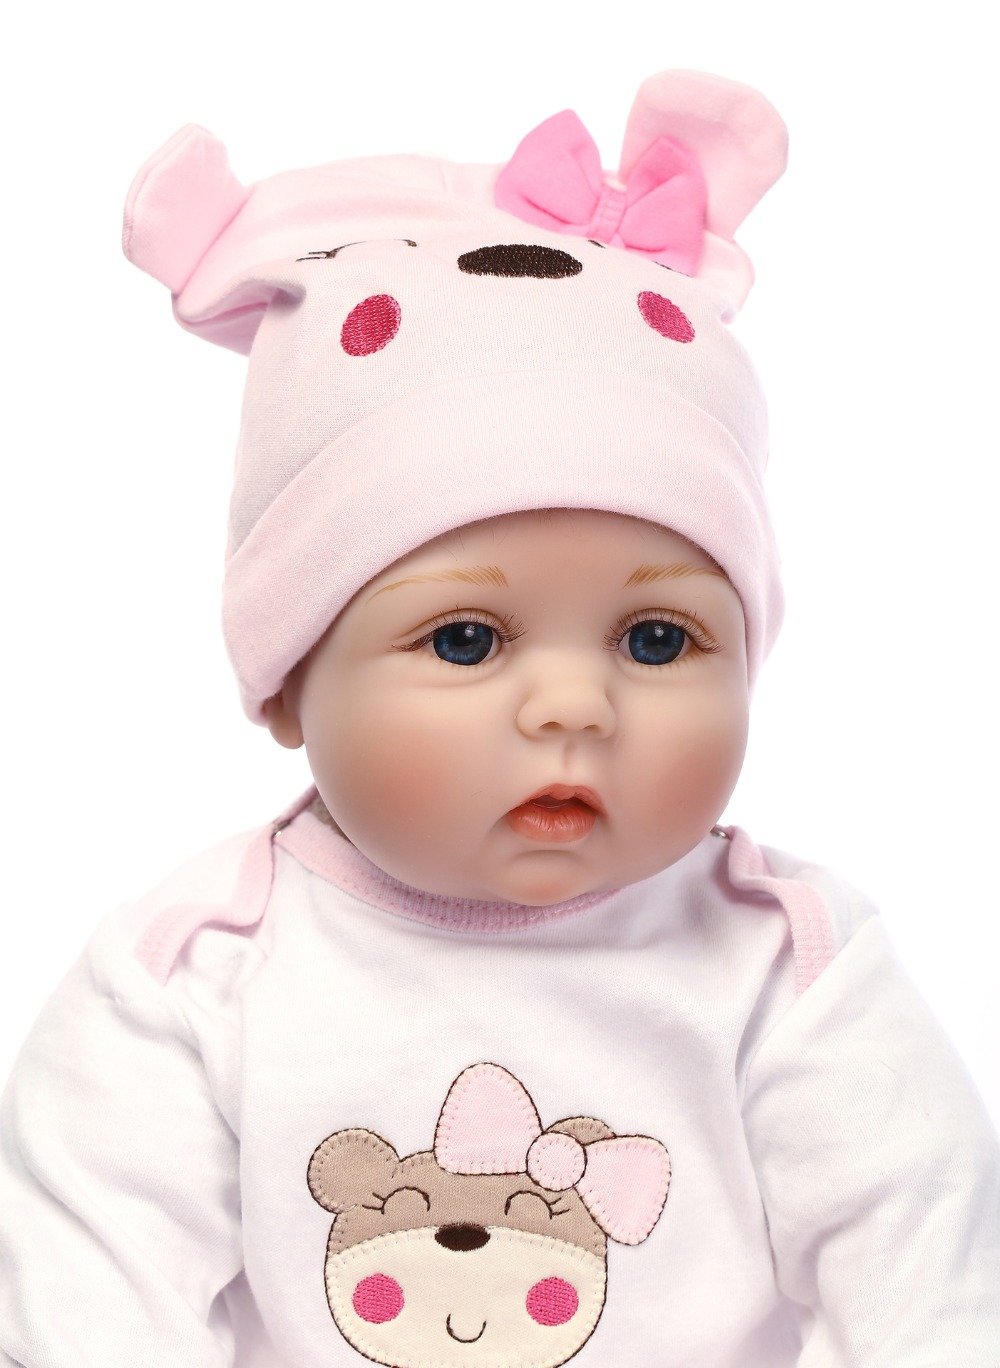 Reborn Doll 55CM Soft Silicone Reborn Baby Dolls Vinyl Toys Big Dolls For Girls 2-7 Years Old Baby Dolls With Blouse Cloth 1